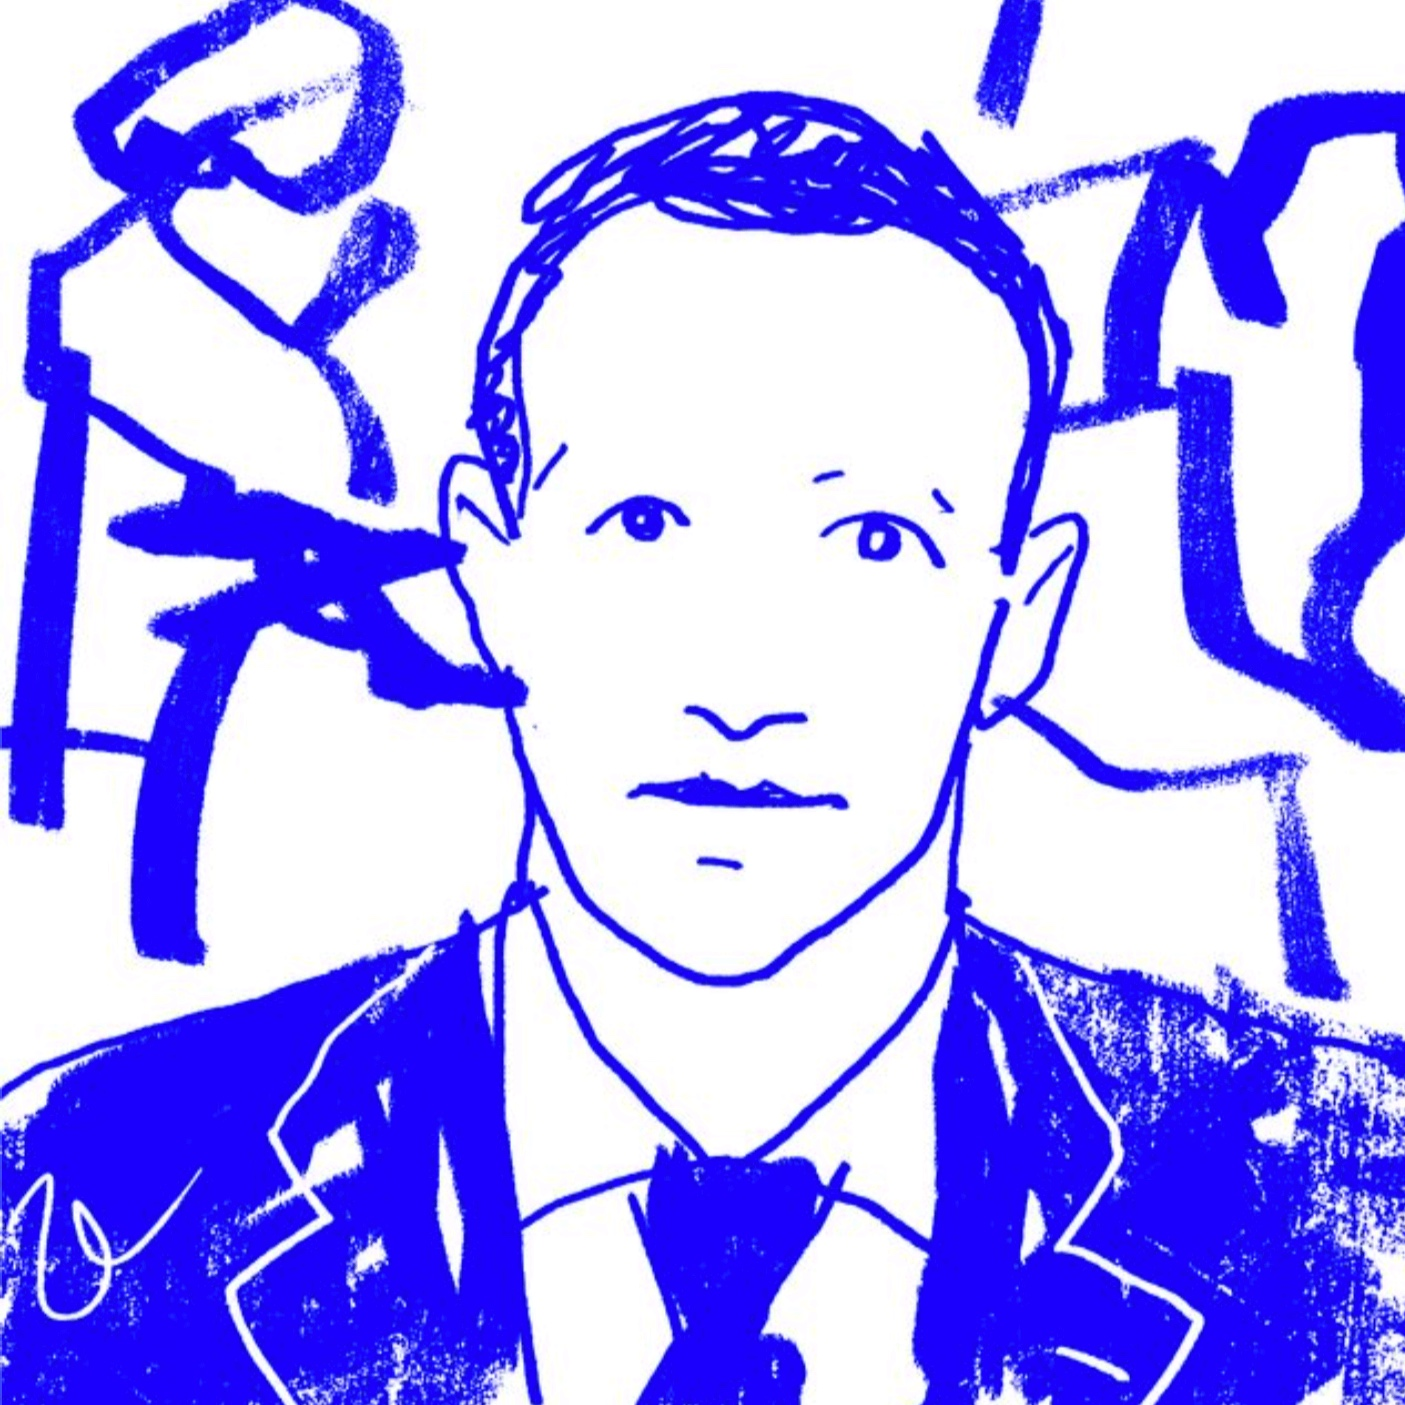 Zuck. Illustration by Onkle Wanskicks